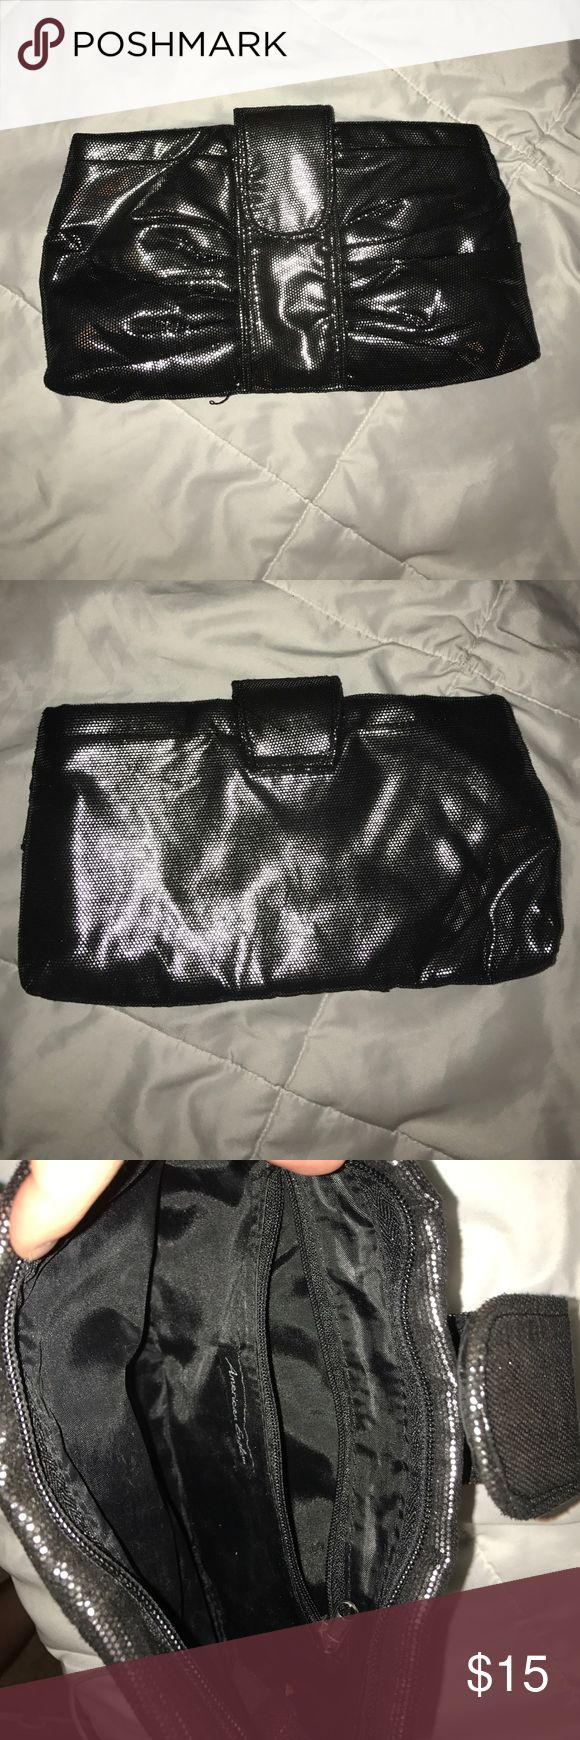 American Eagle handbag Never used American Eagle Outfitters Bags Clutches & Wristlets